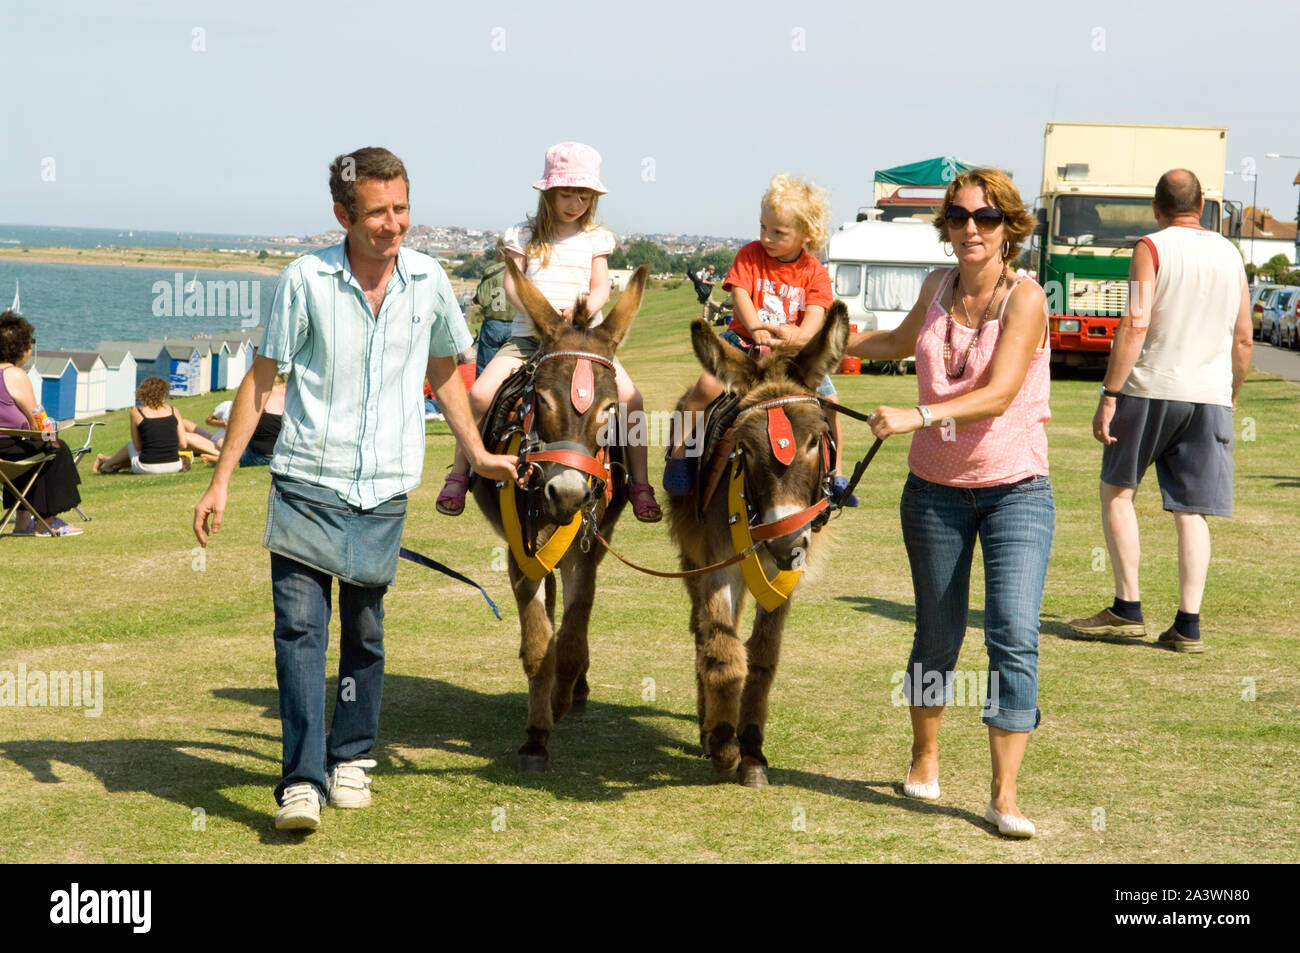 Children on Donkeys at a fair Stock Photo